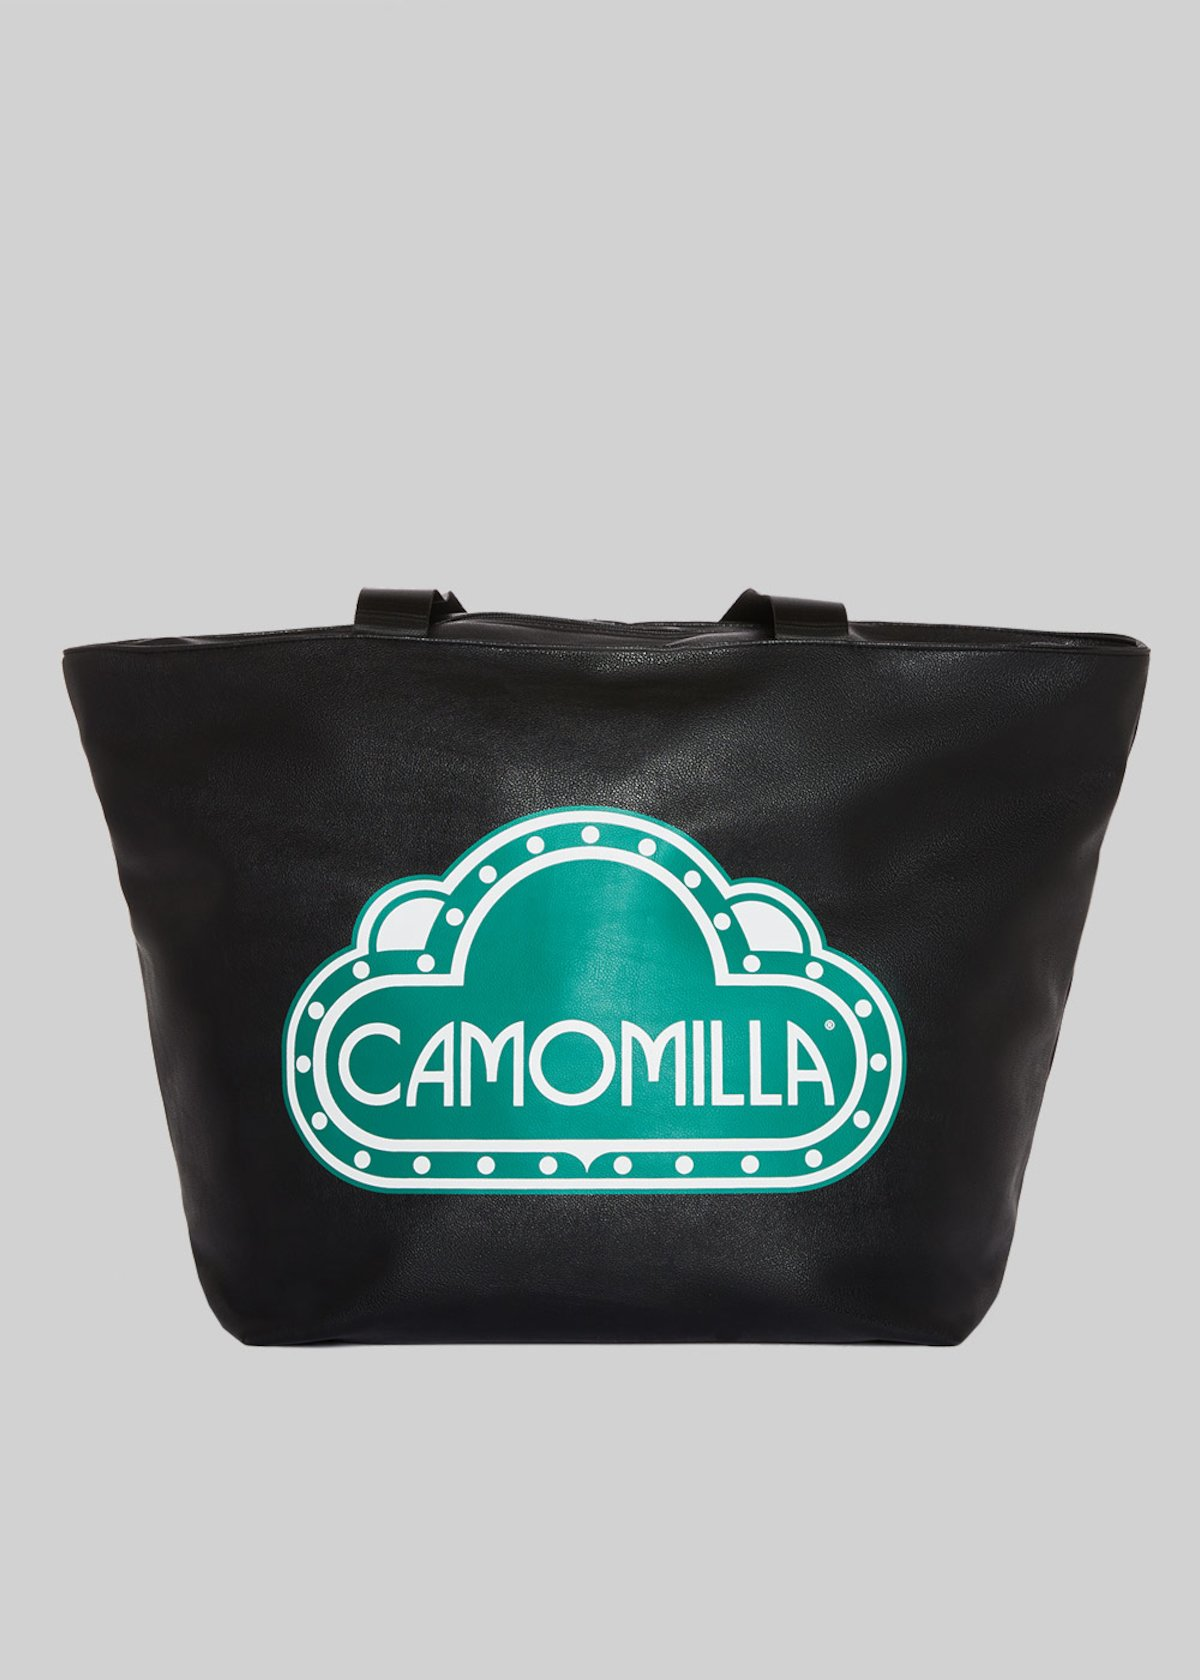 Faux leather Blody Bag with Camomilla logo - Black